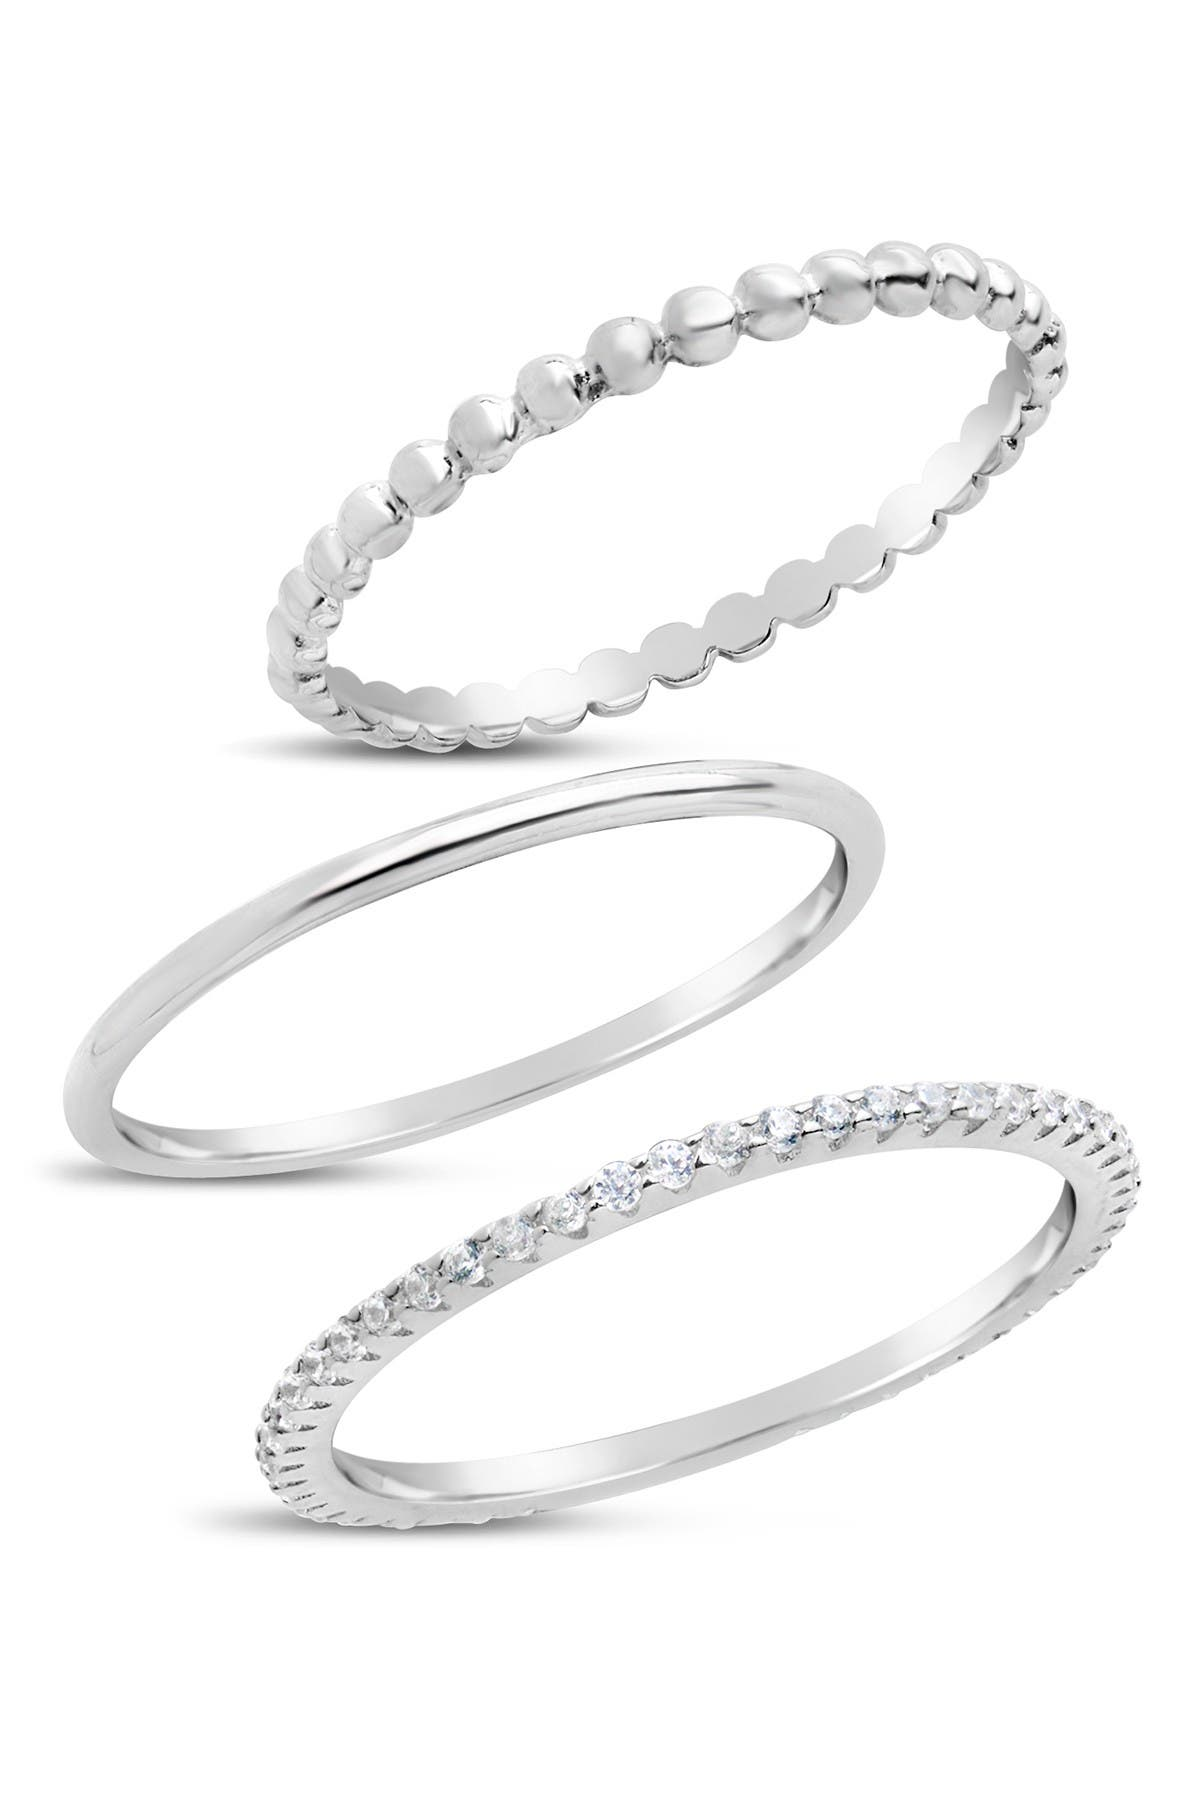 Gold and Silver Textured Stacking Ring Set-14K Gold and Sterling Silver Stackers with Twist /& Beaded Band-Three Stacking Bands Hammered